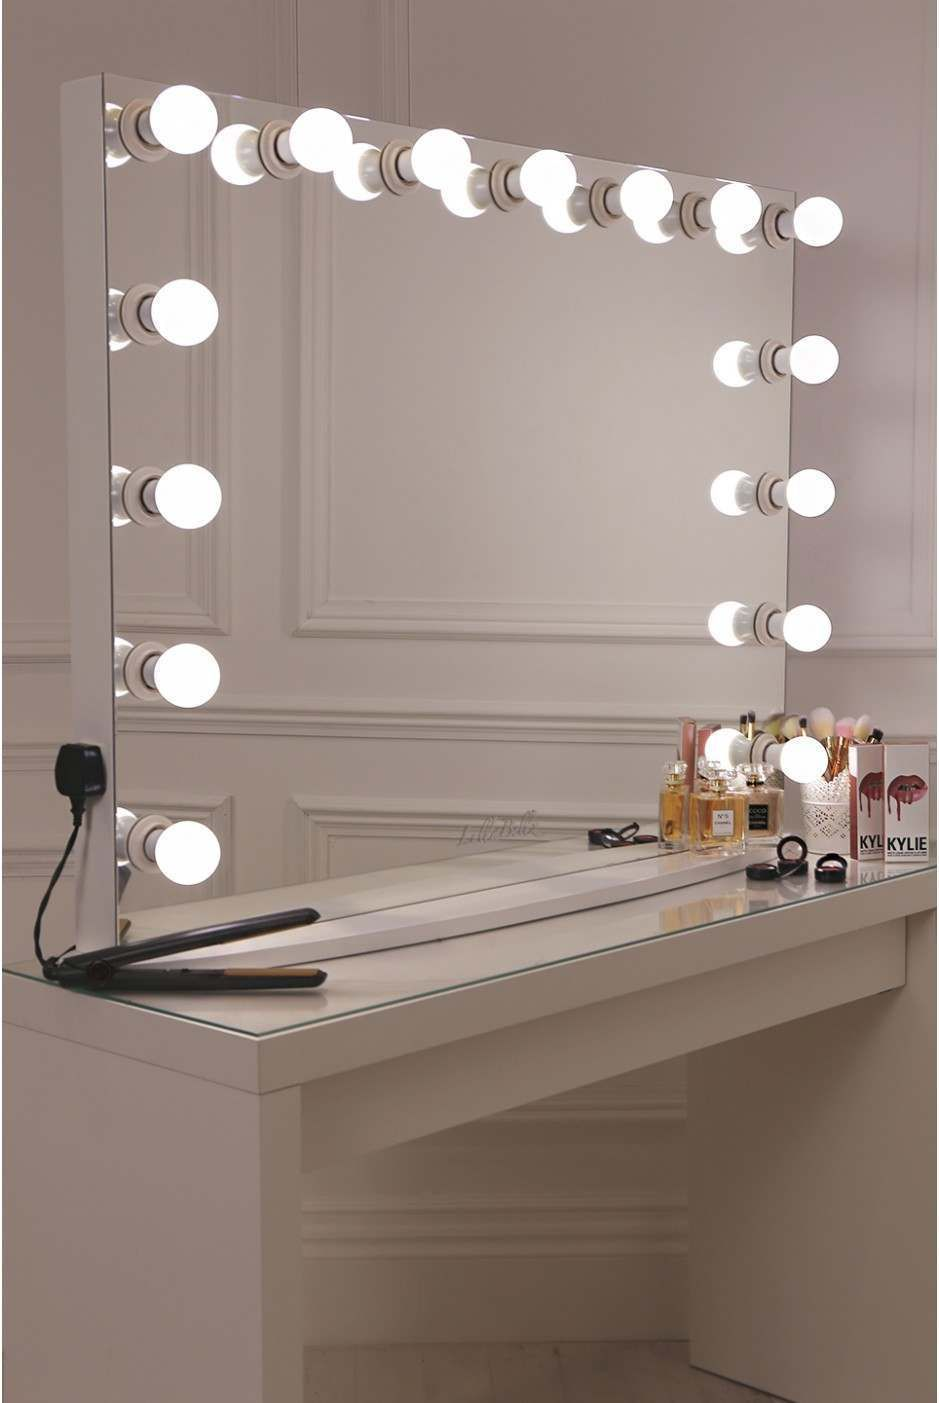 15 frosted bulb hollywood mirror with crisp white finish maria pinterest hollywood mirror. Black Bedroom Furniture Sets. Home Design Ideas